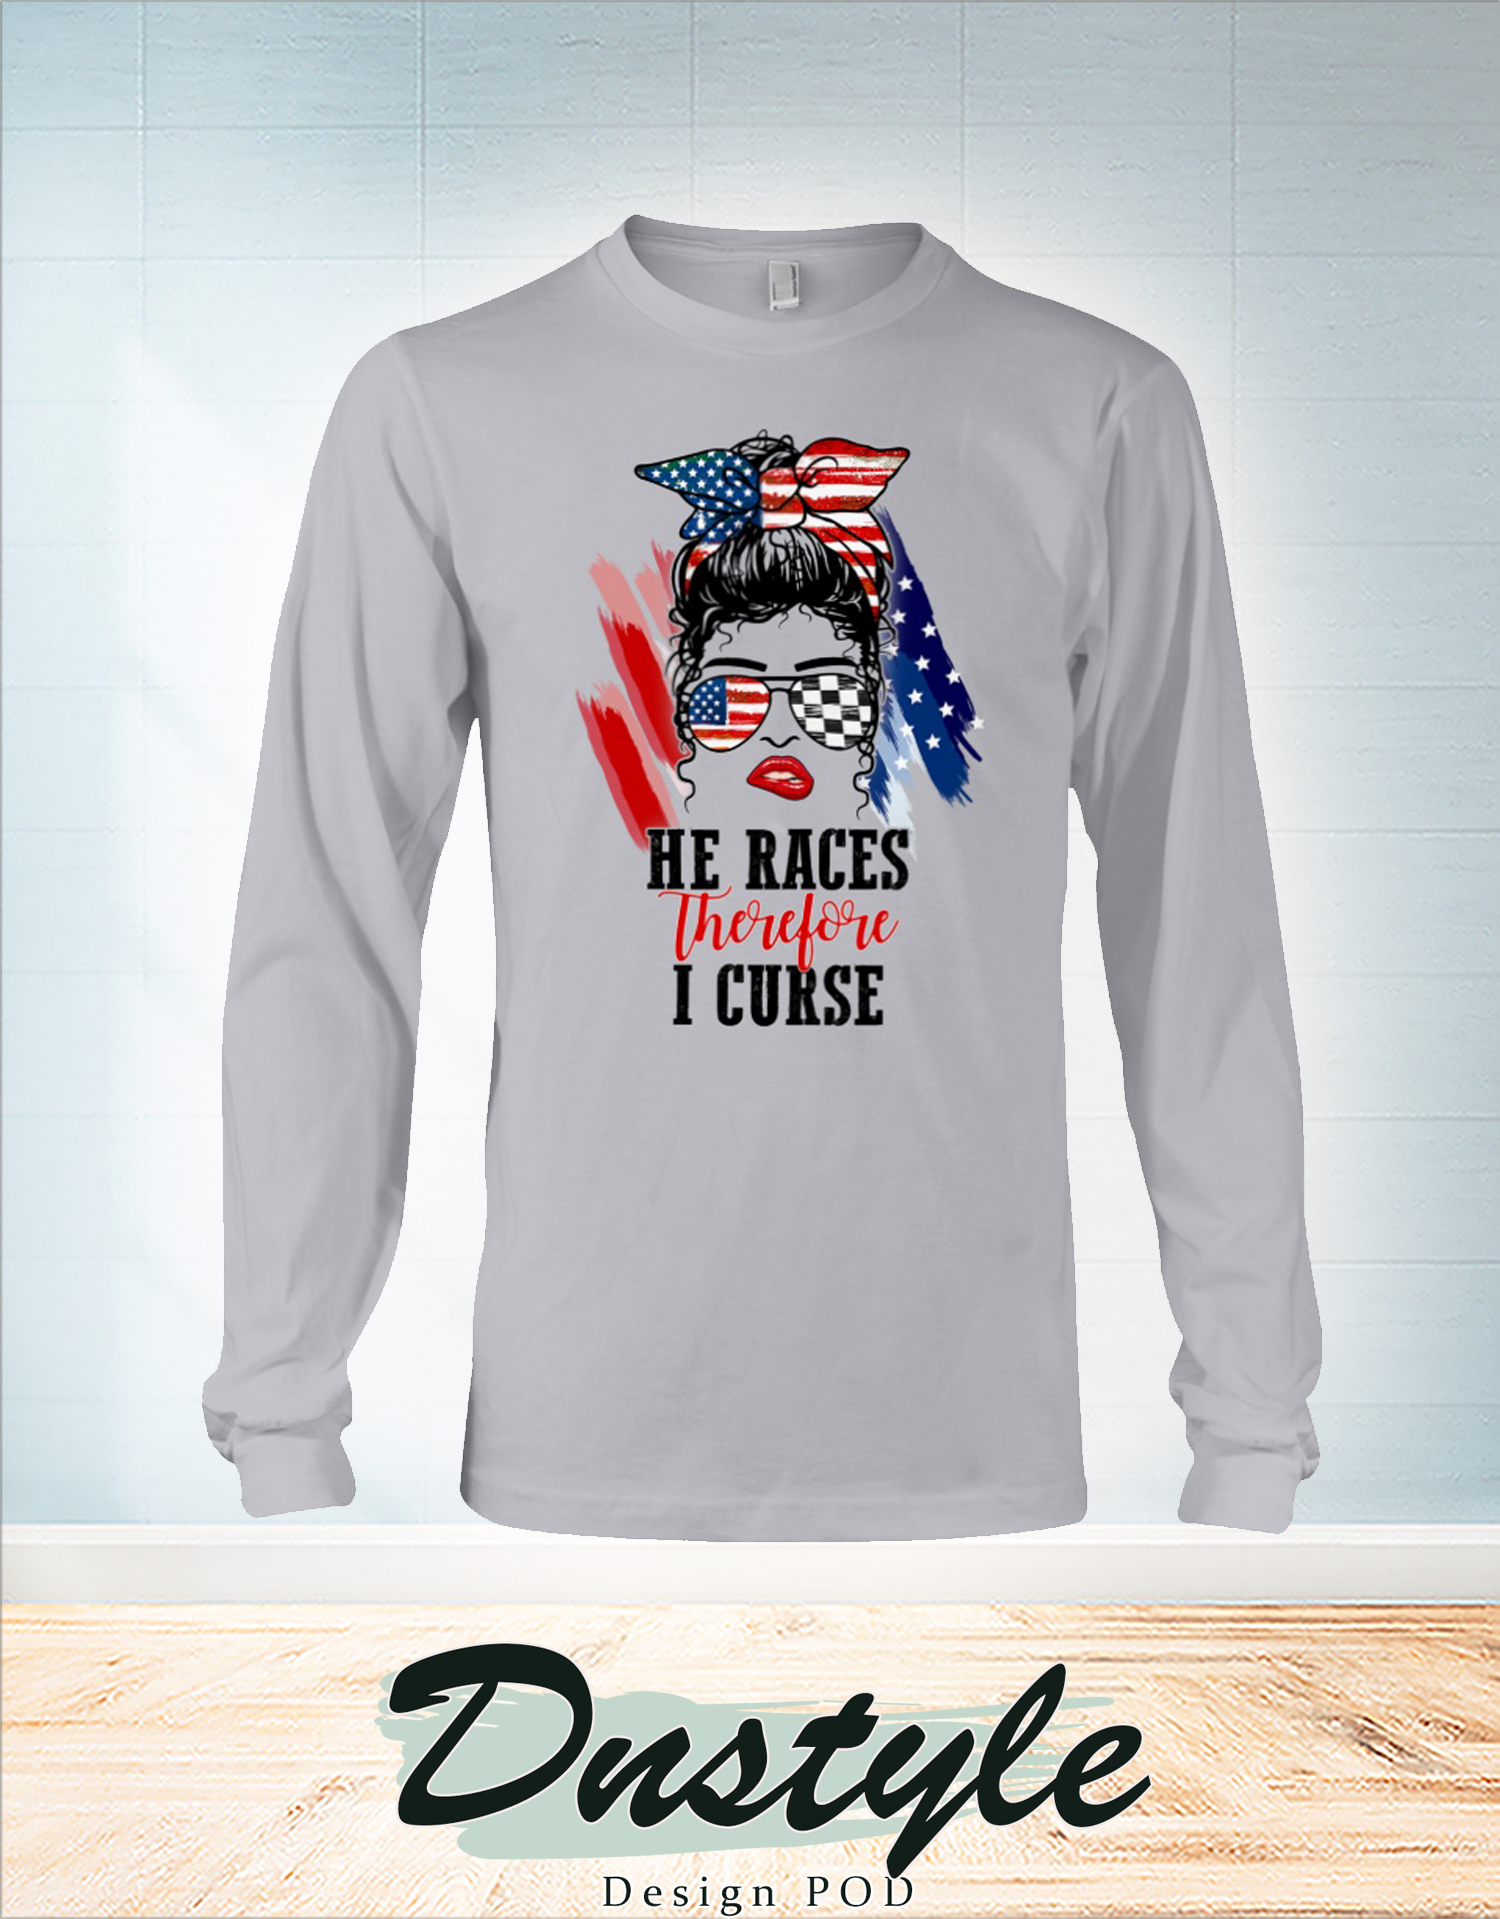 American flag glasses girl He races therefore I curse long sleeve